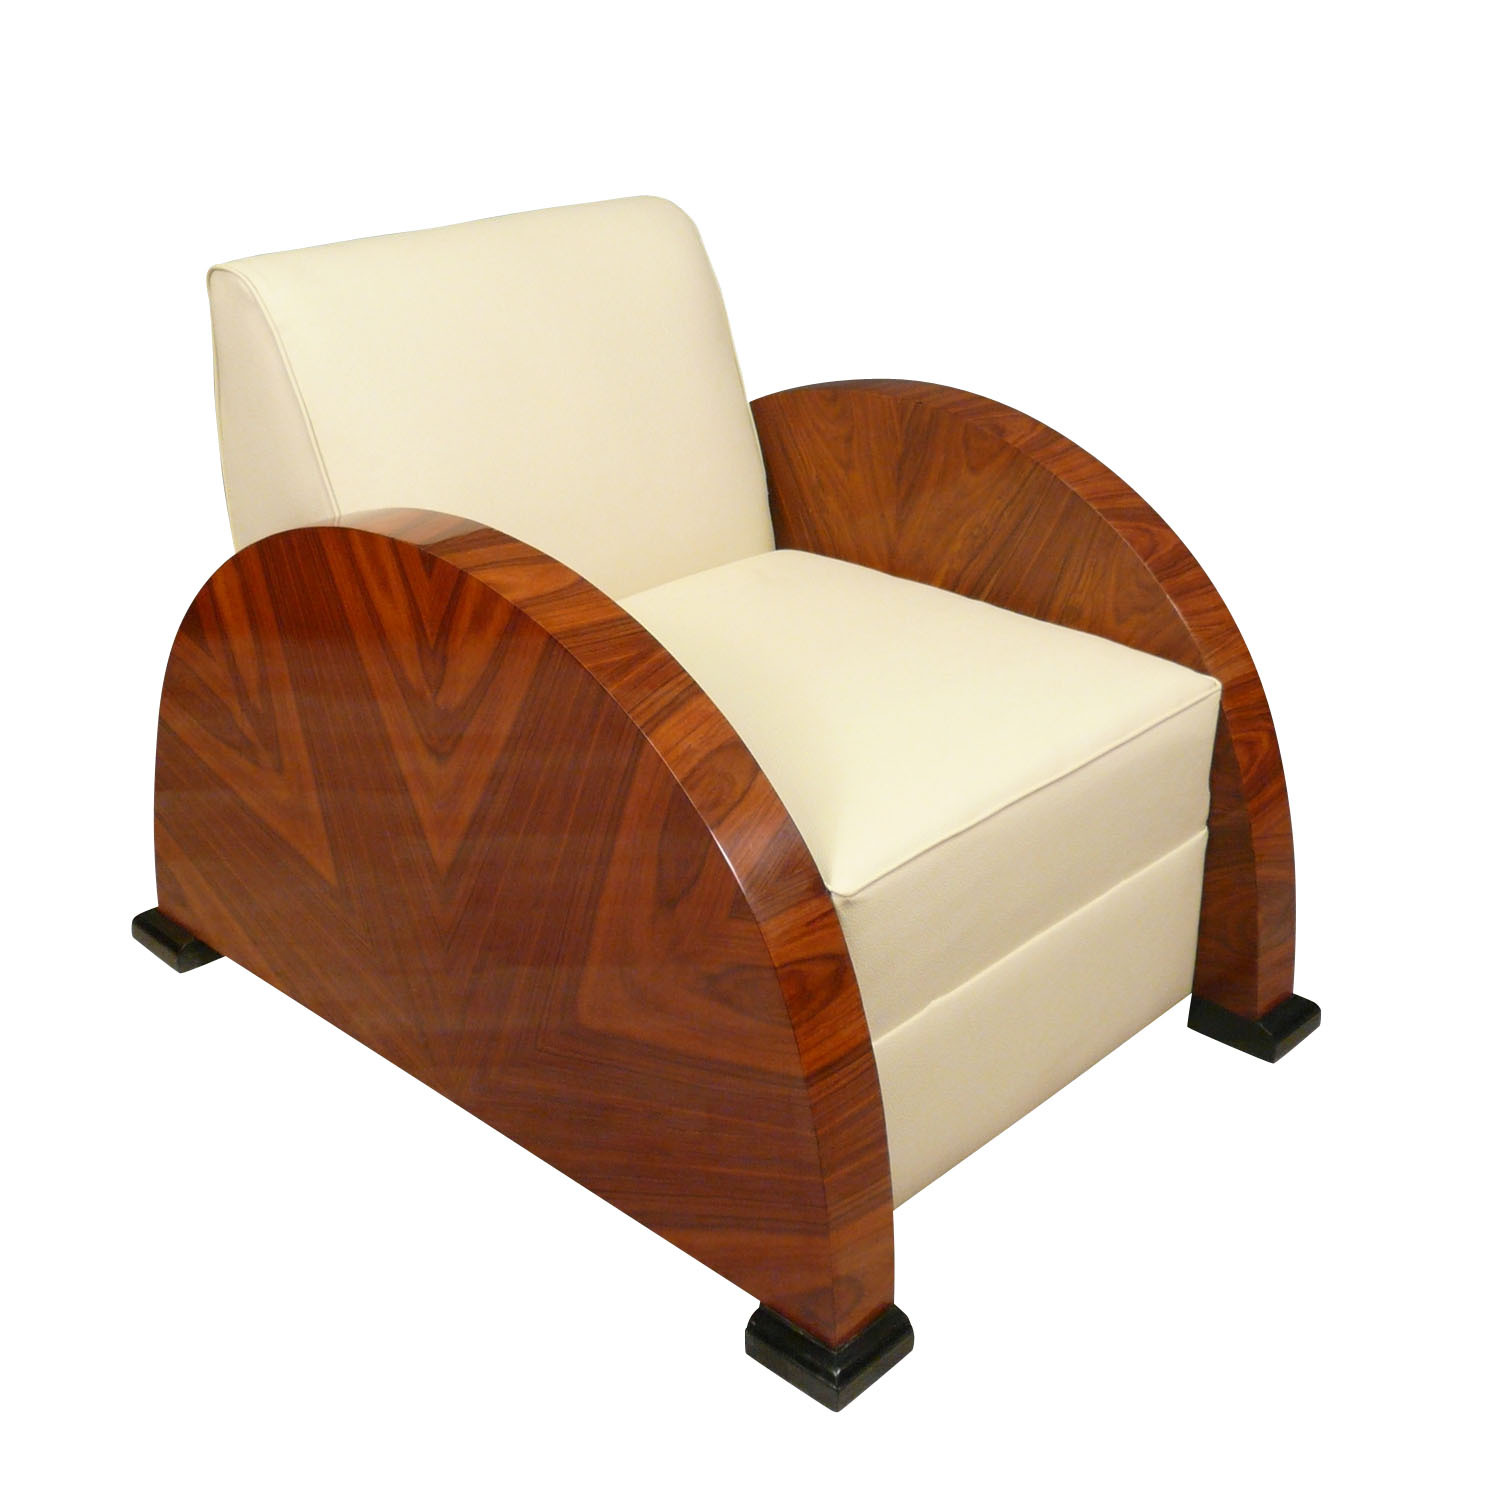 Art deco armchair photo gallery art deco furniture for Meuble art deco